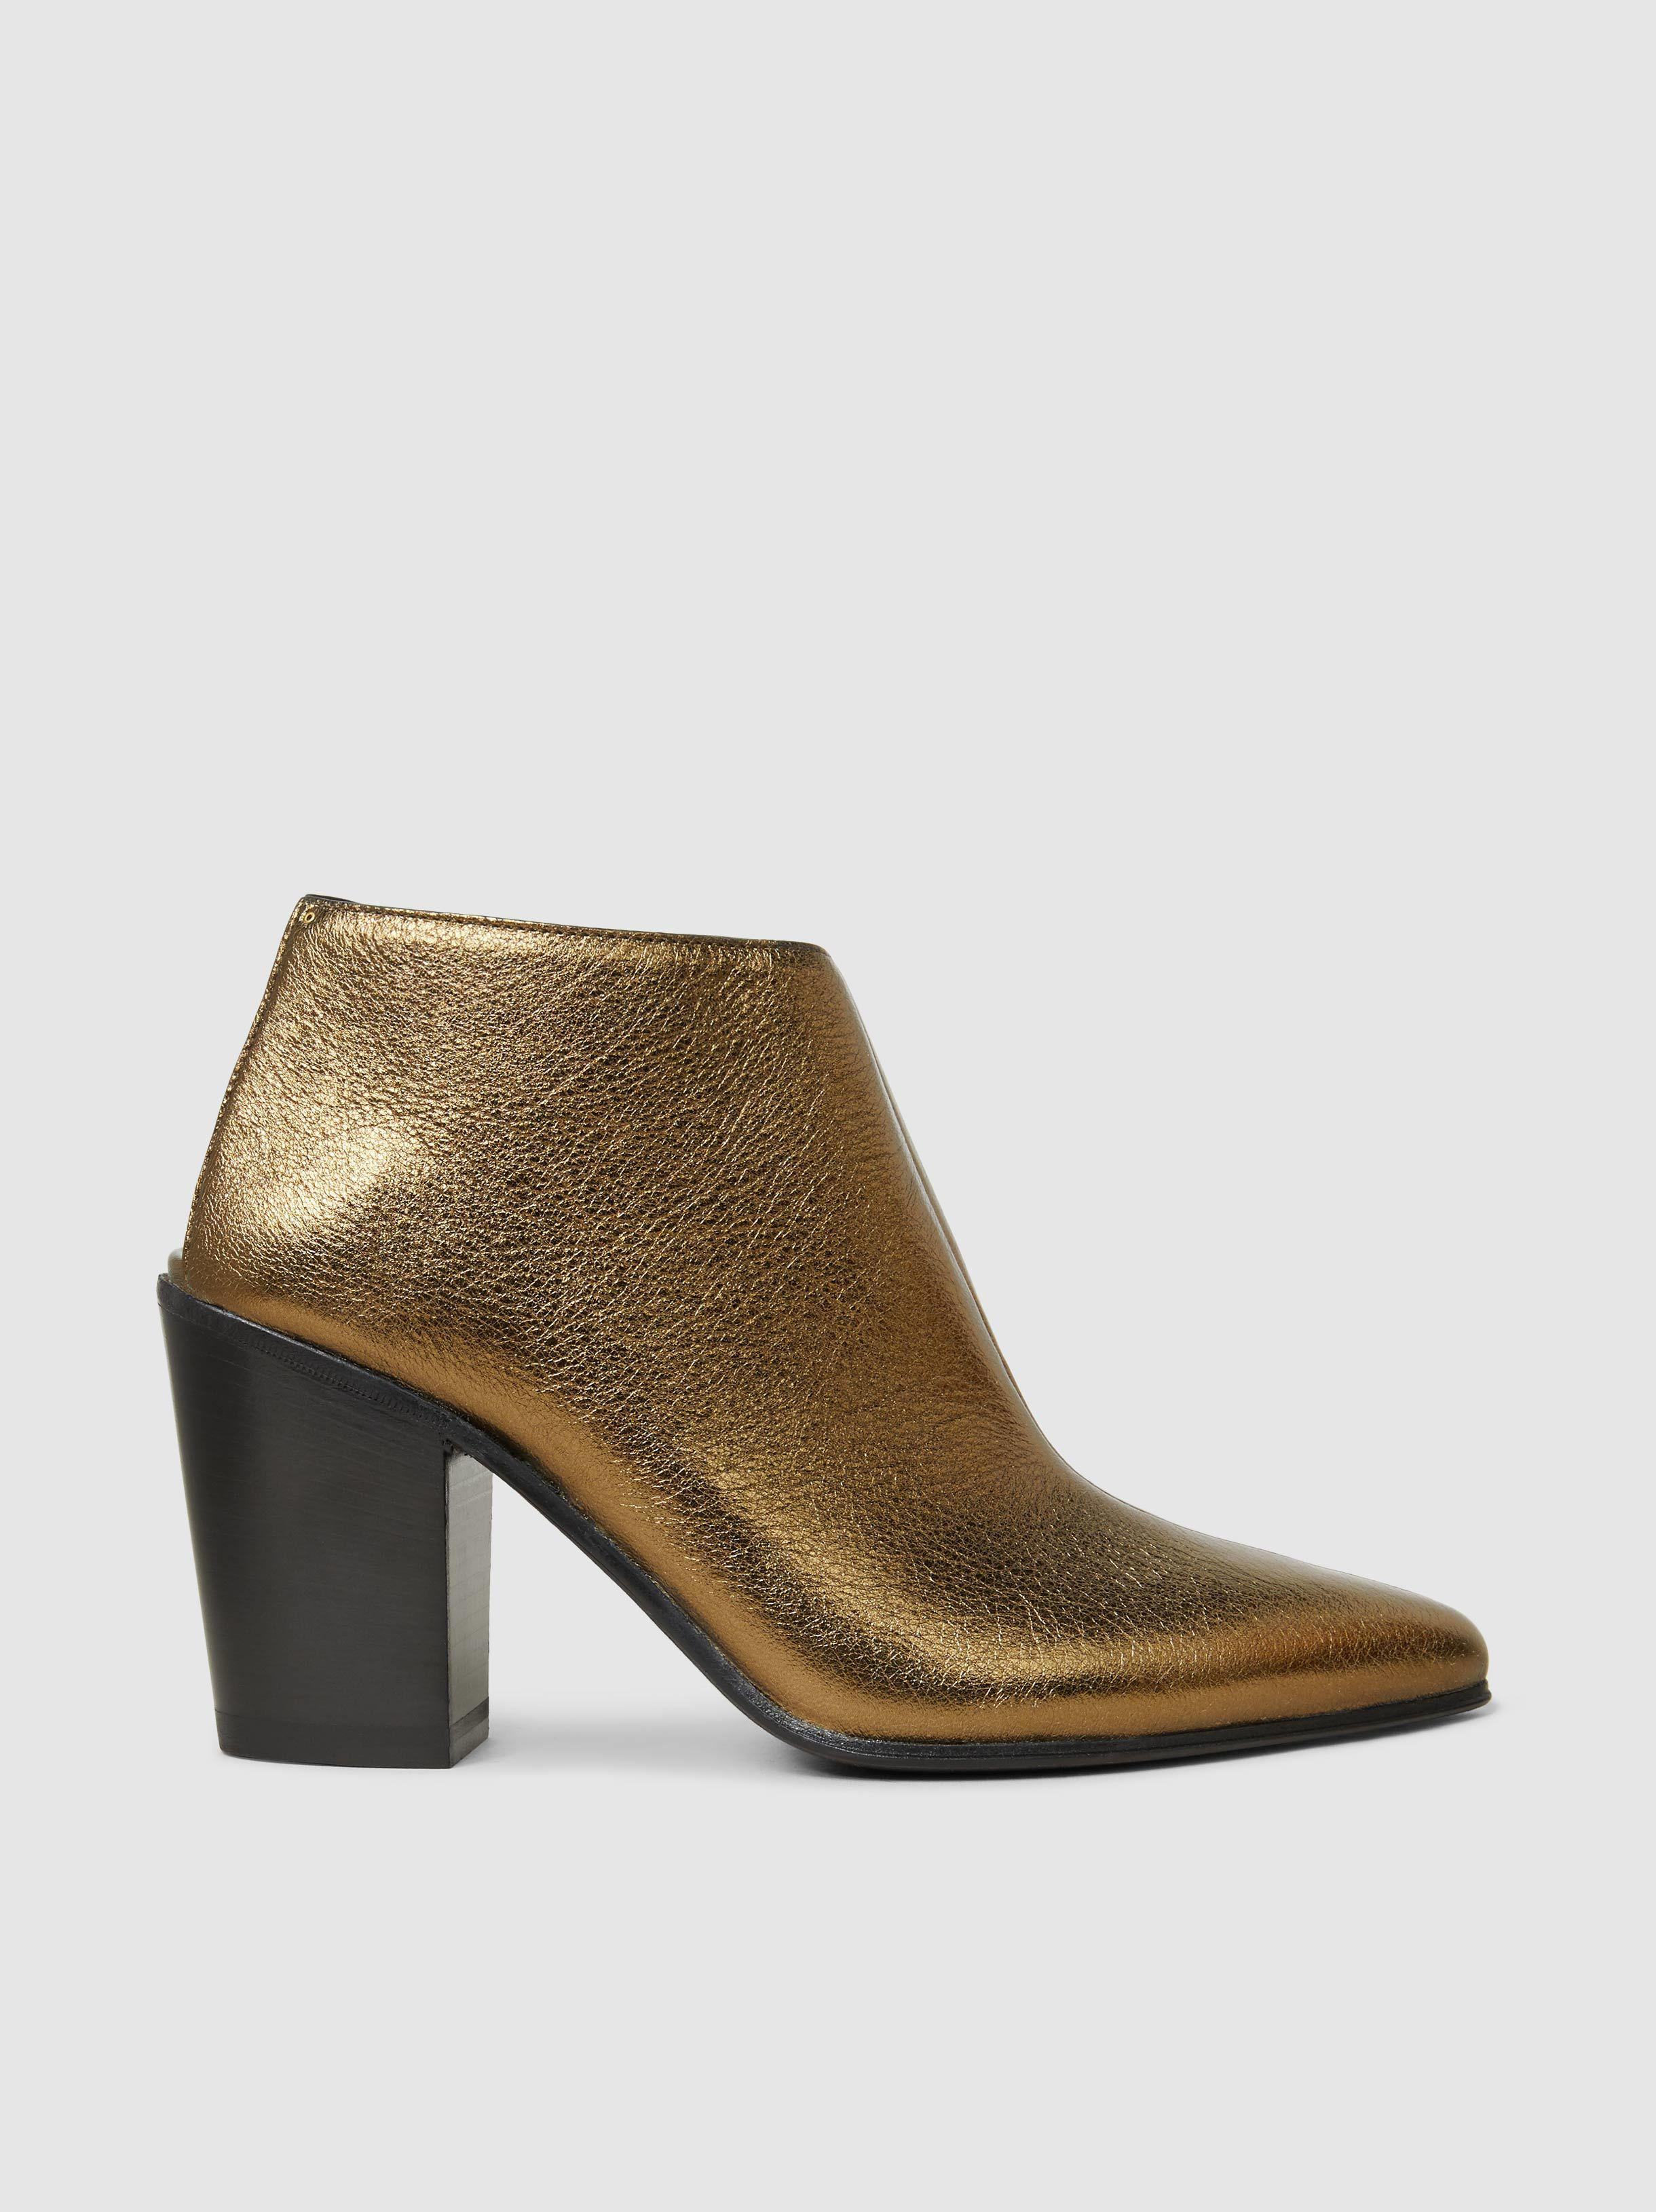 ALUMNAE Textured-Leather Ankle Boots oTtFyk6